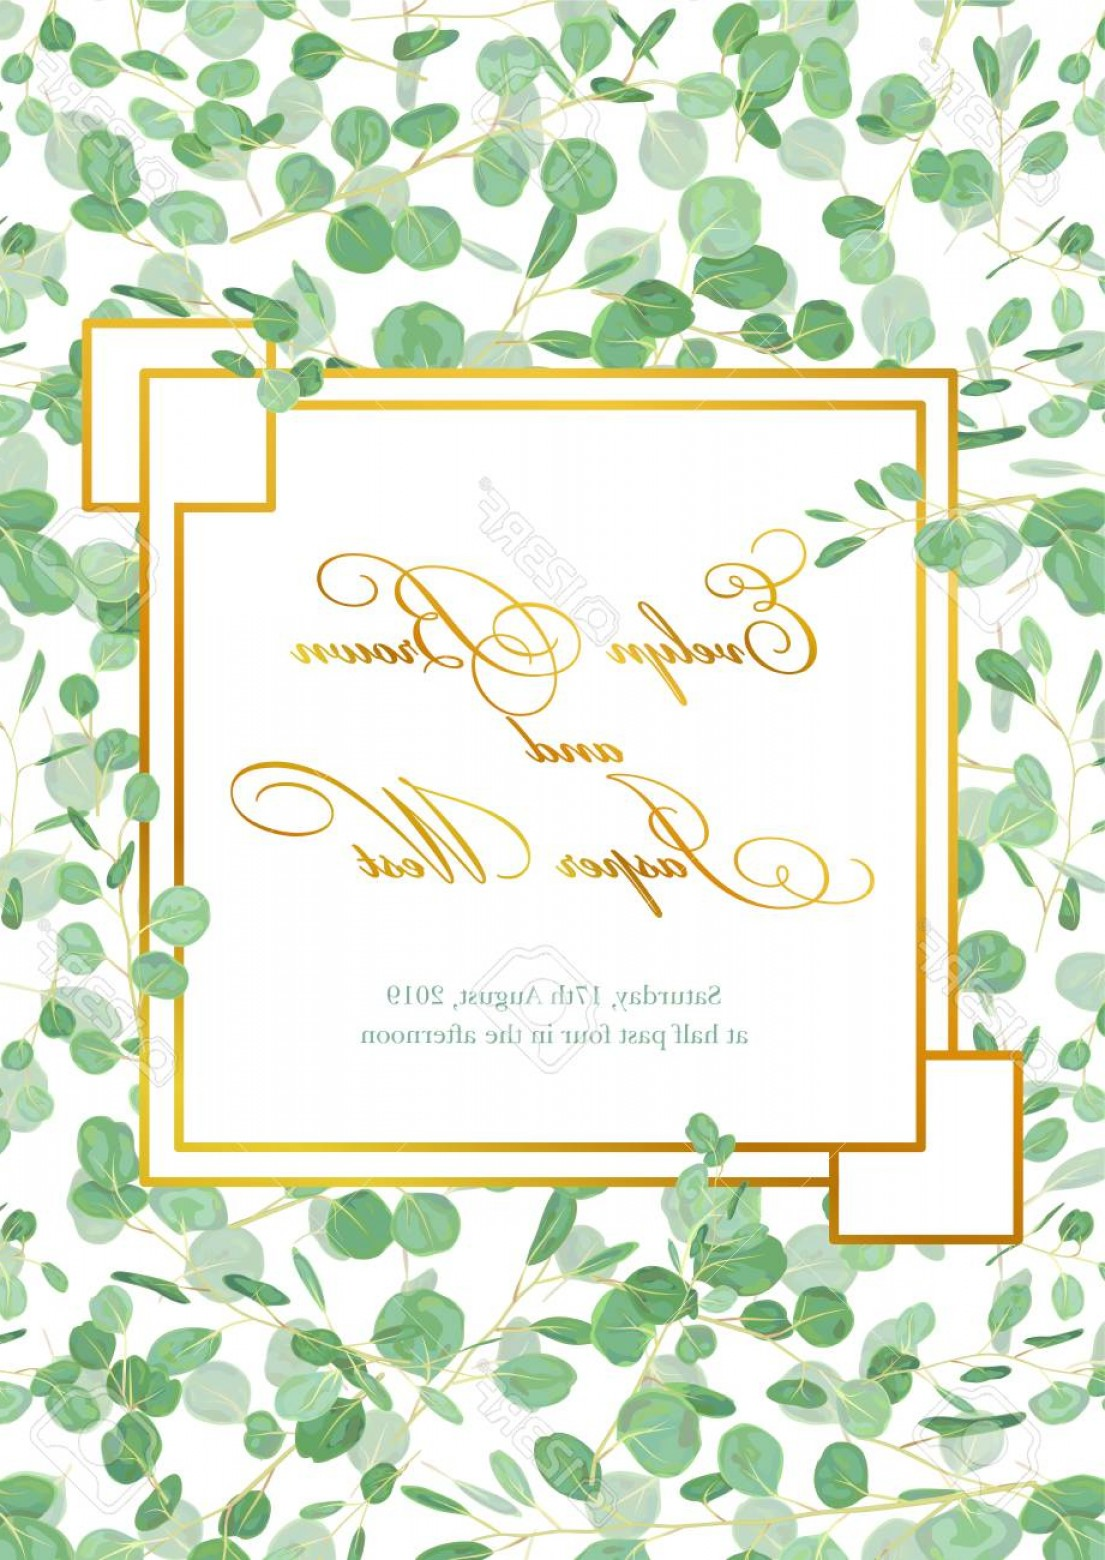 Rustic Wedding Invitation Vector: Photostock Vector Beautiful Rustic Wedding Invitation Card With Eucalyptus Green Leaves And Branches In A Gold Geometr